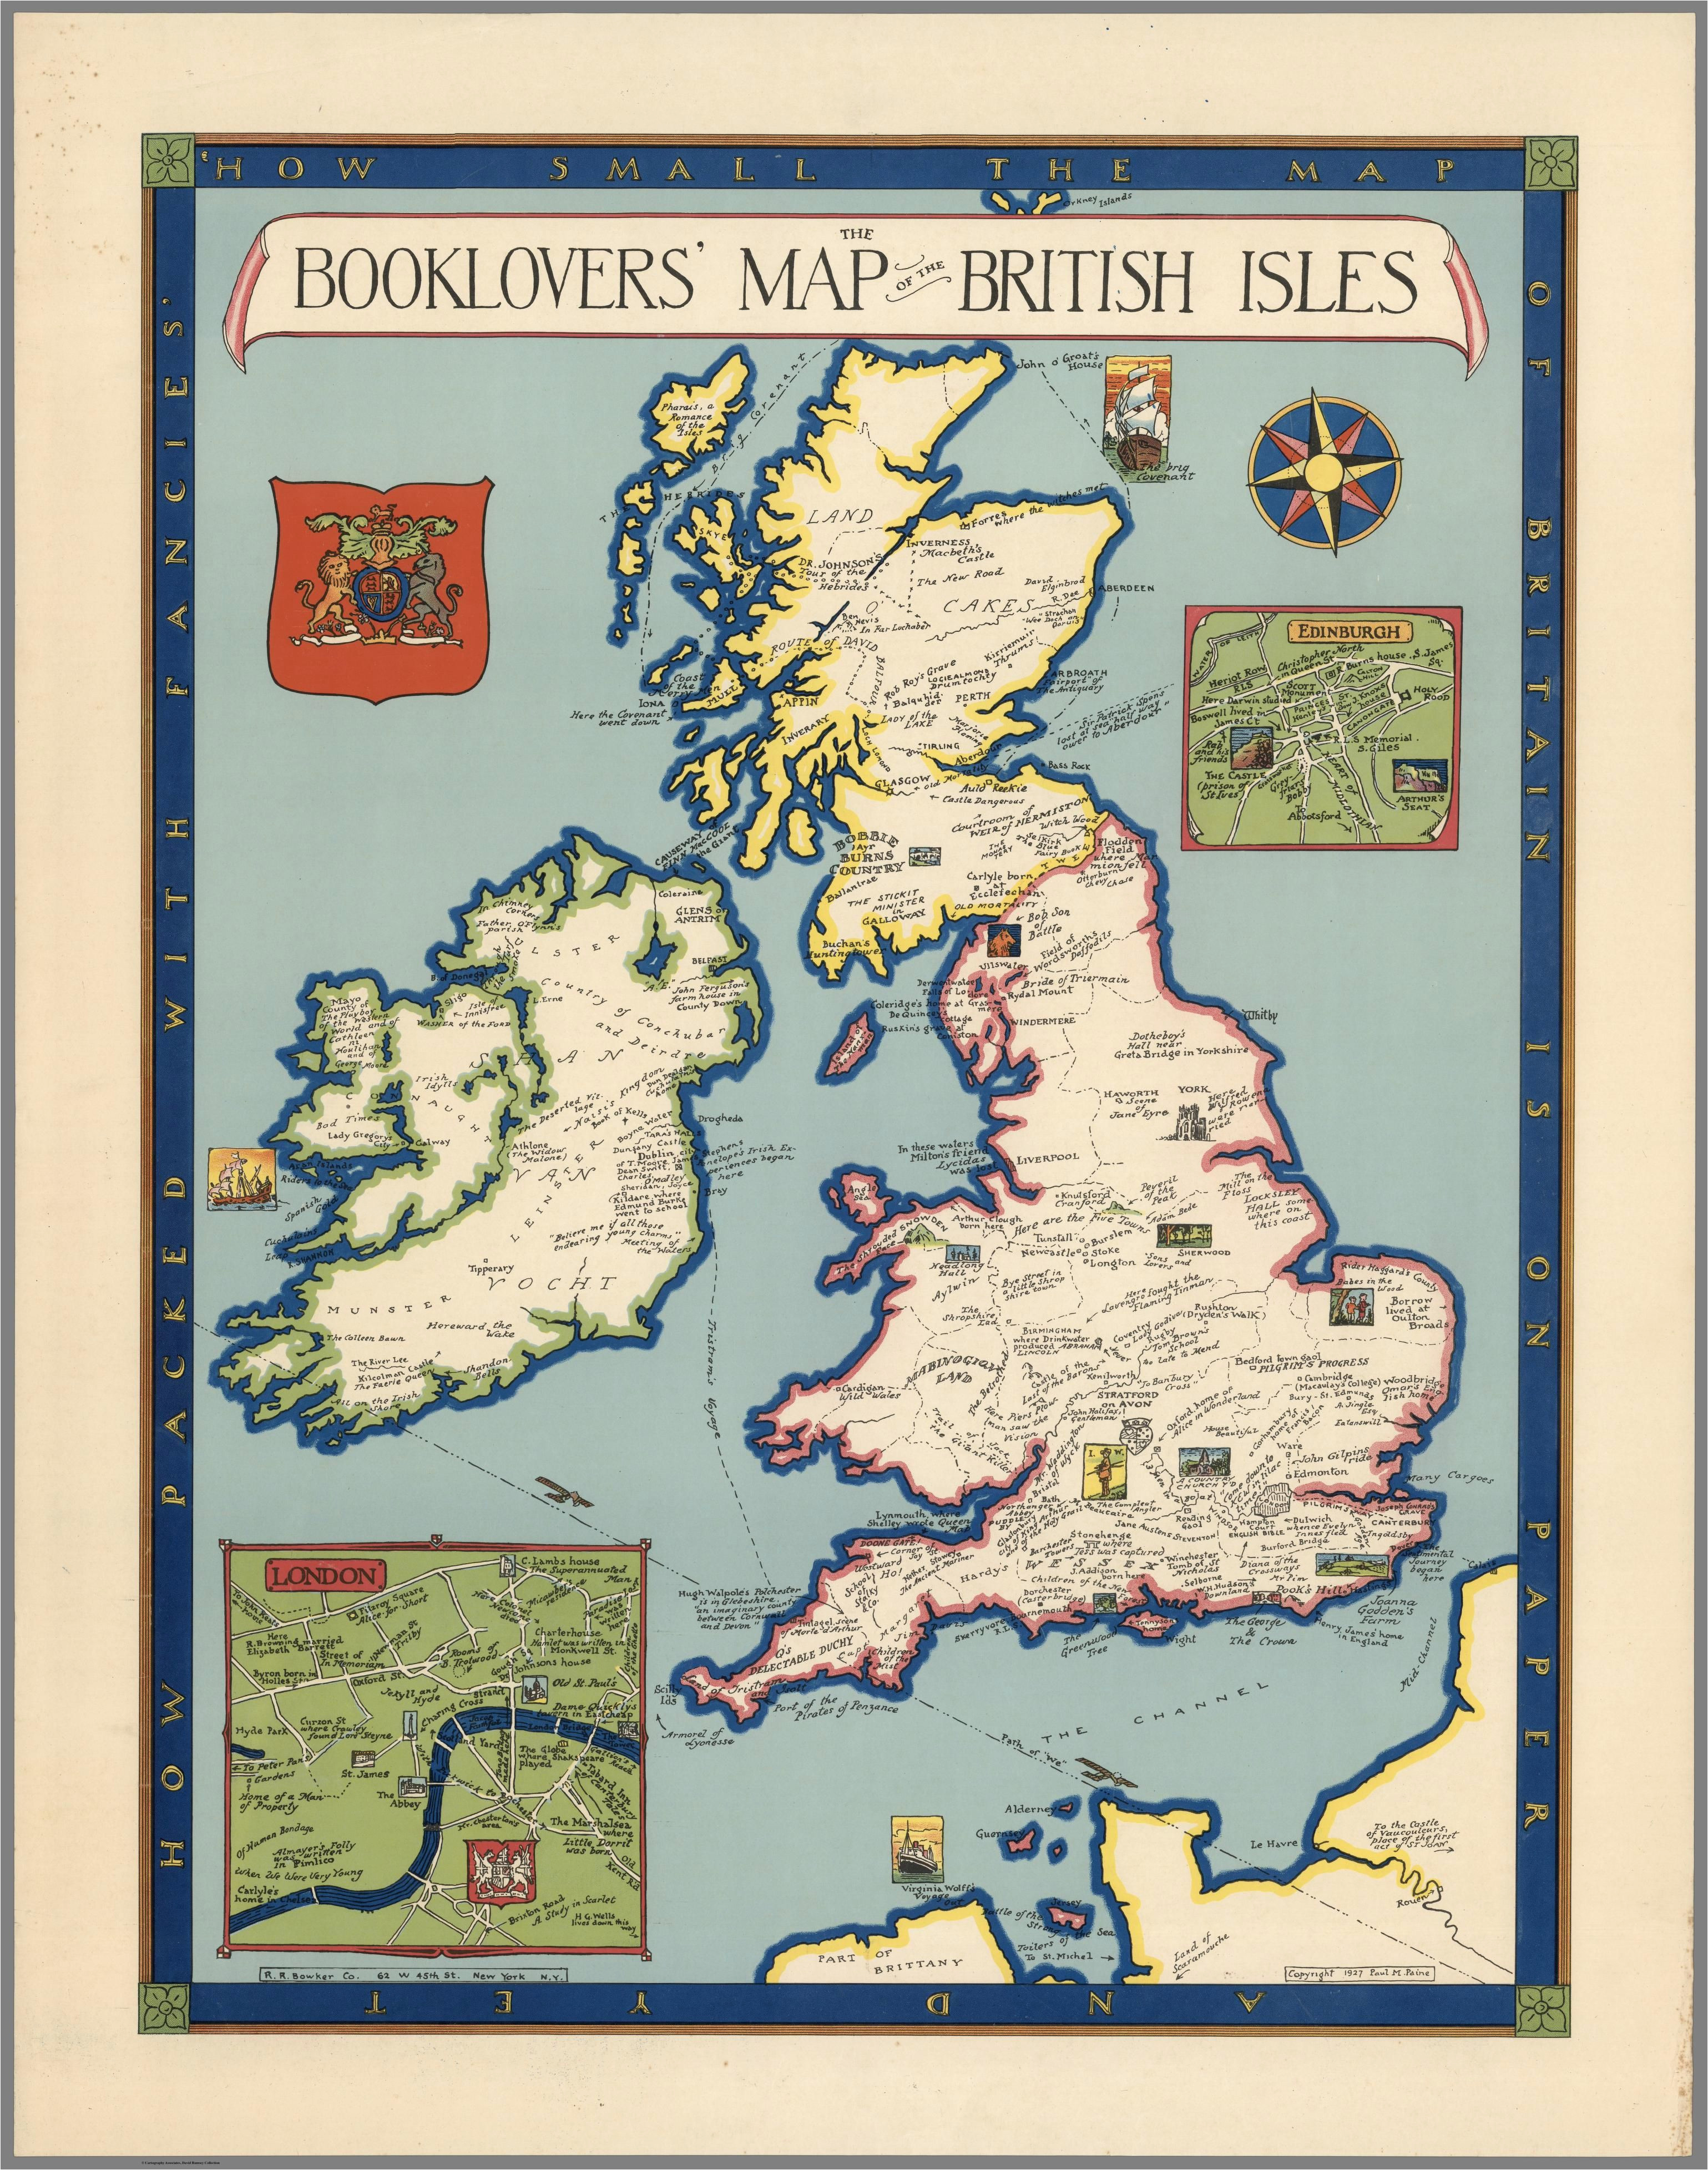 Forests In England On A Map the Booklovers Map Of the British isles Paine 1927 Map